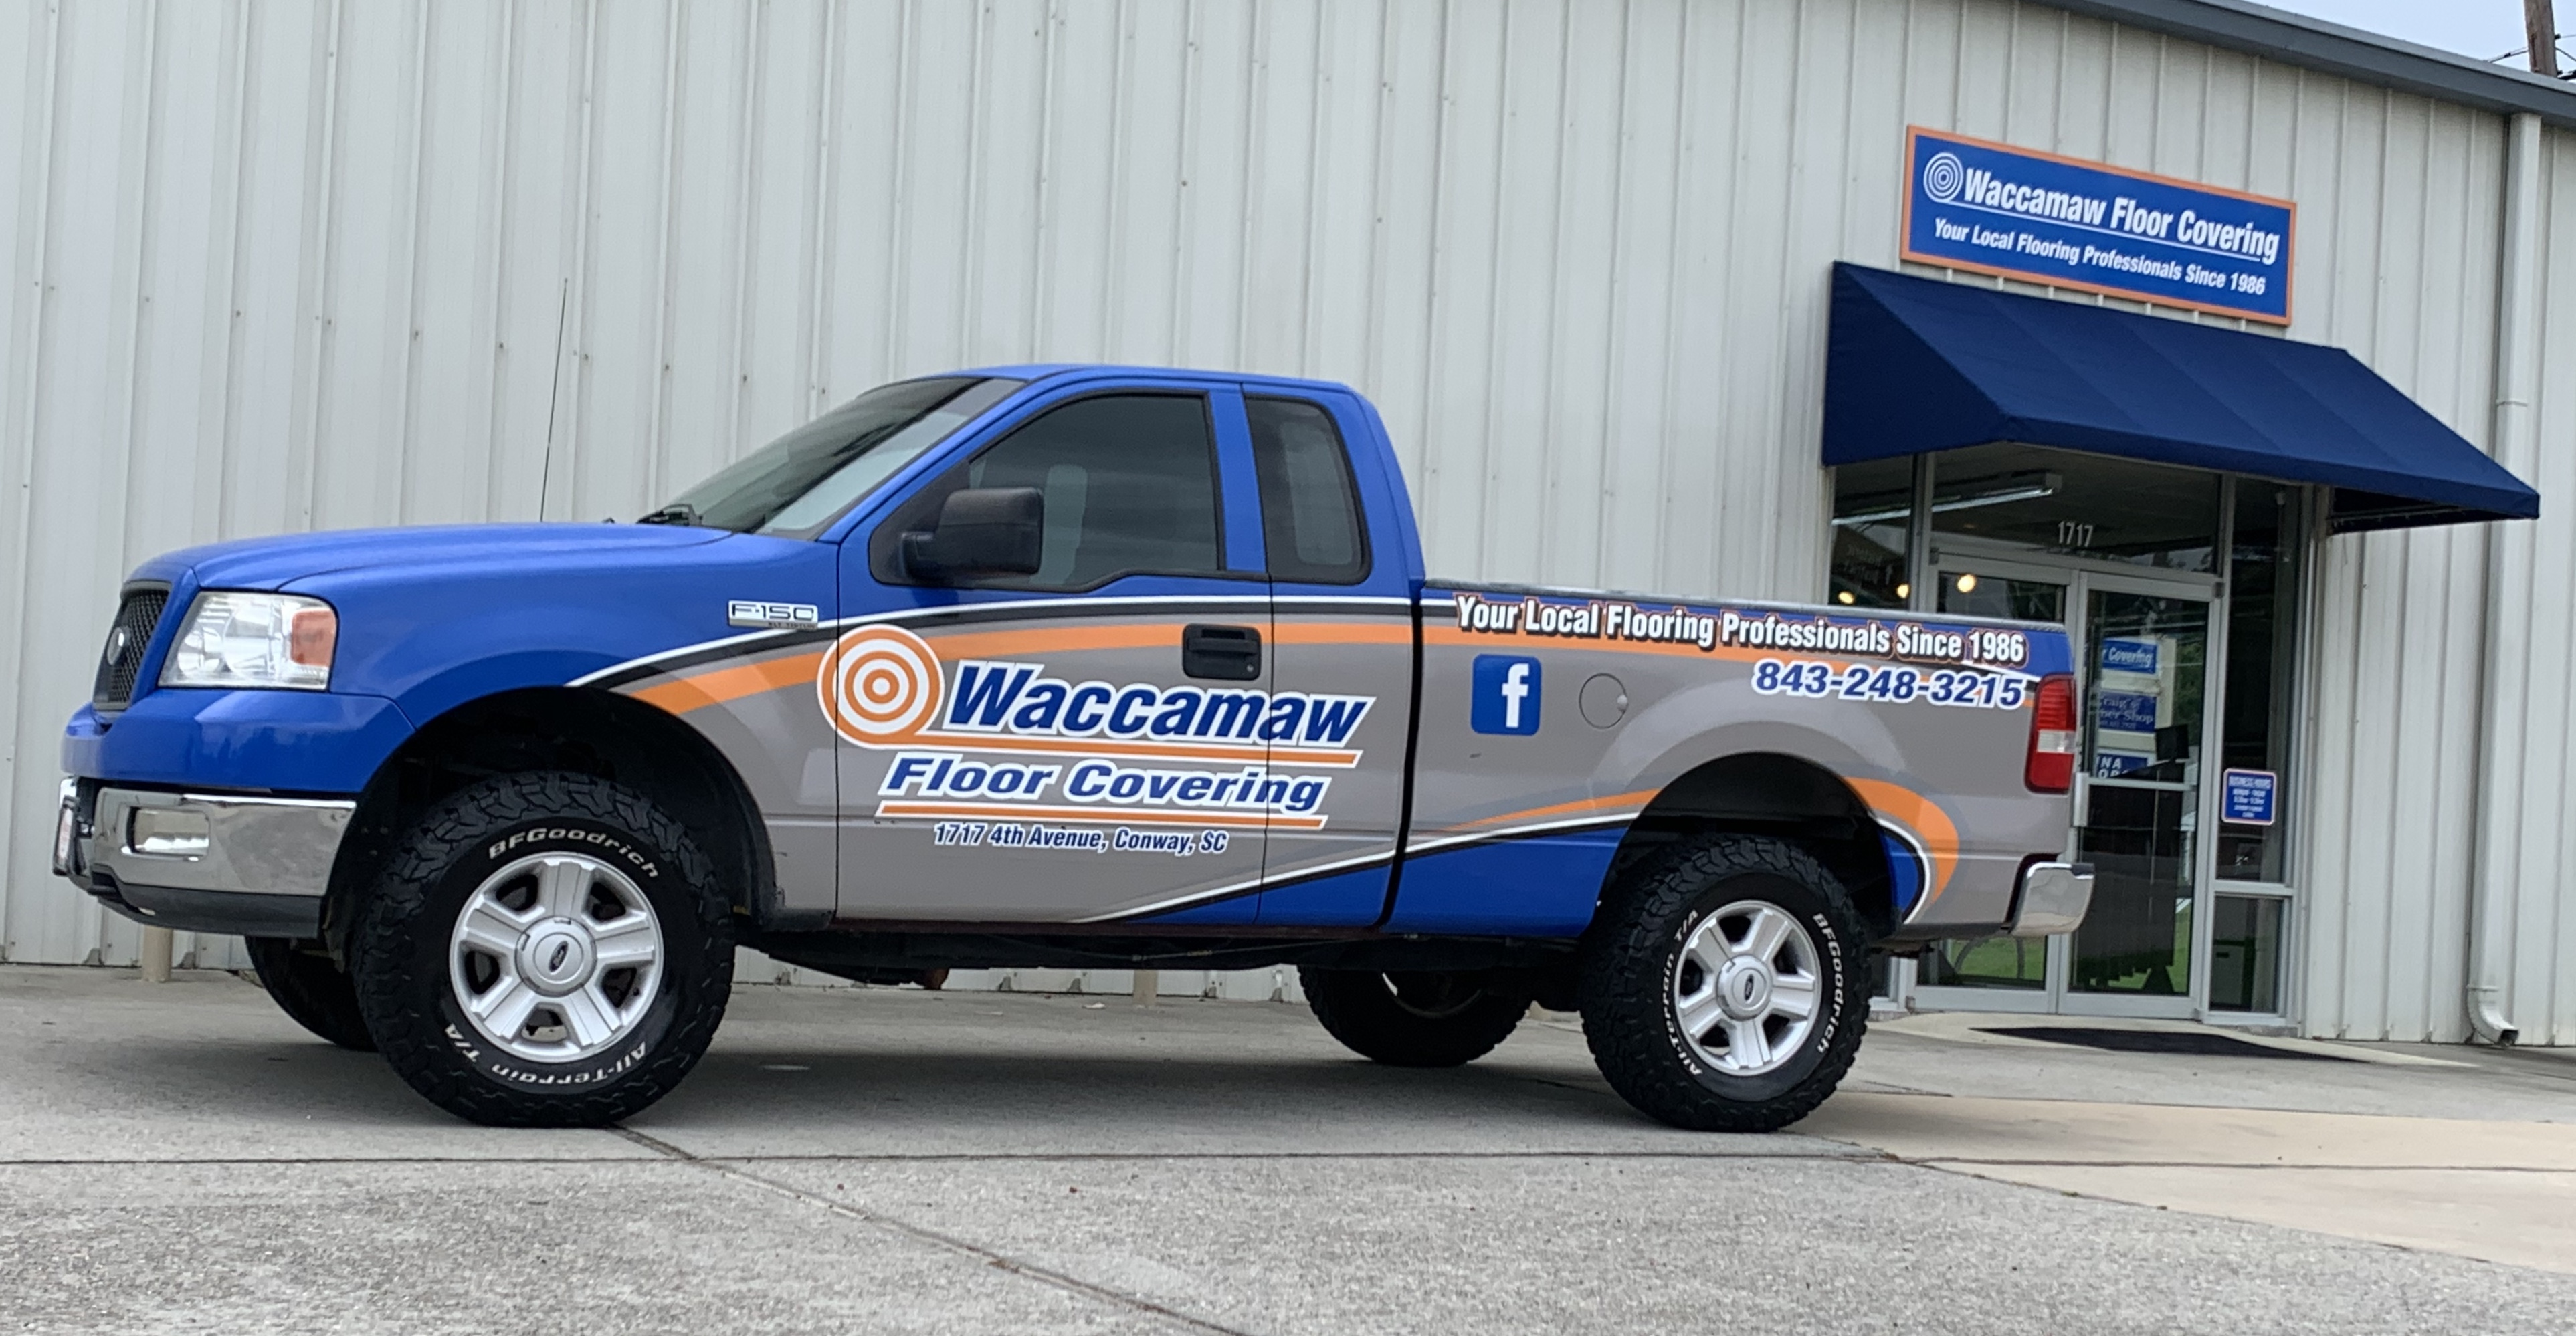 Waccamaw Floor Covering - 1717 4th Ave, Conway, SC 29527